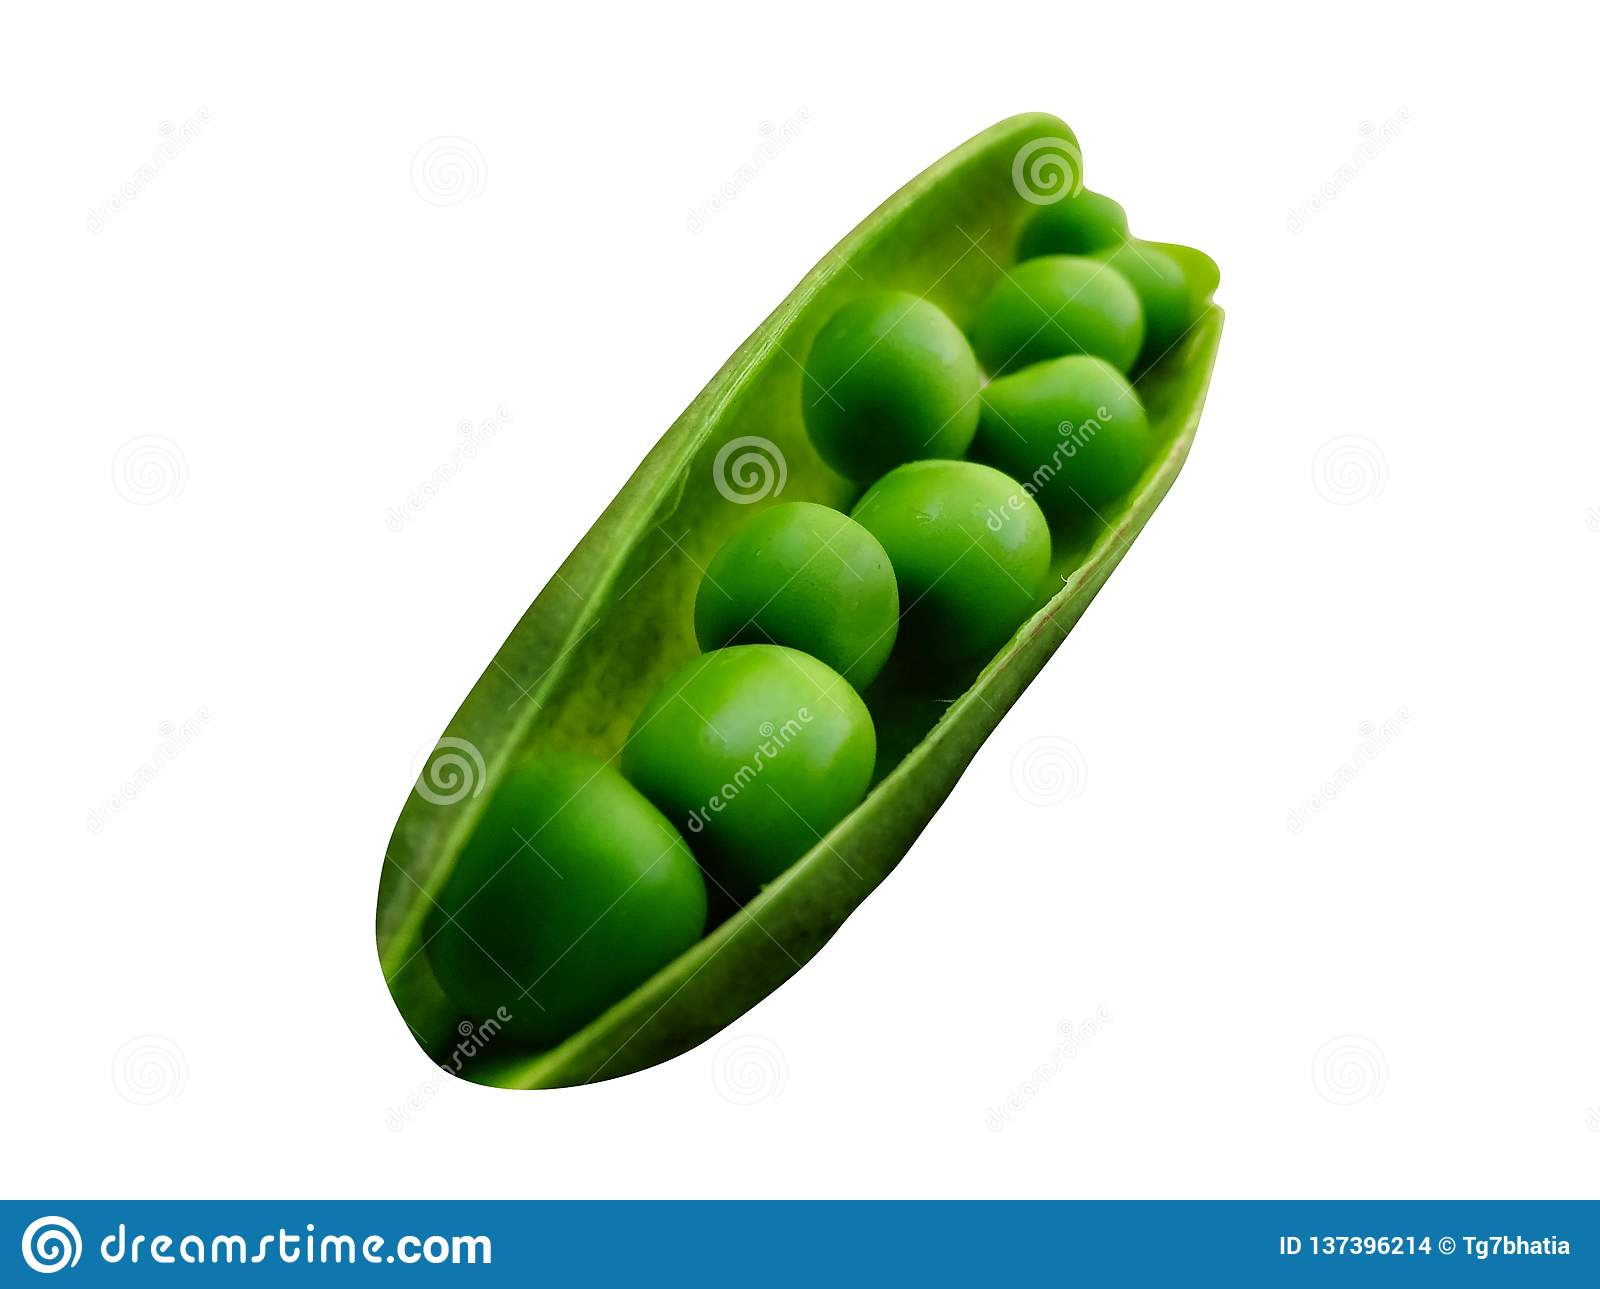 Green Peas isolated with PNG format.